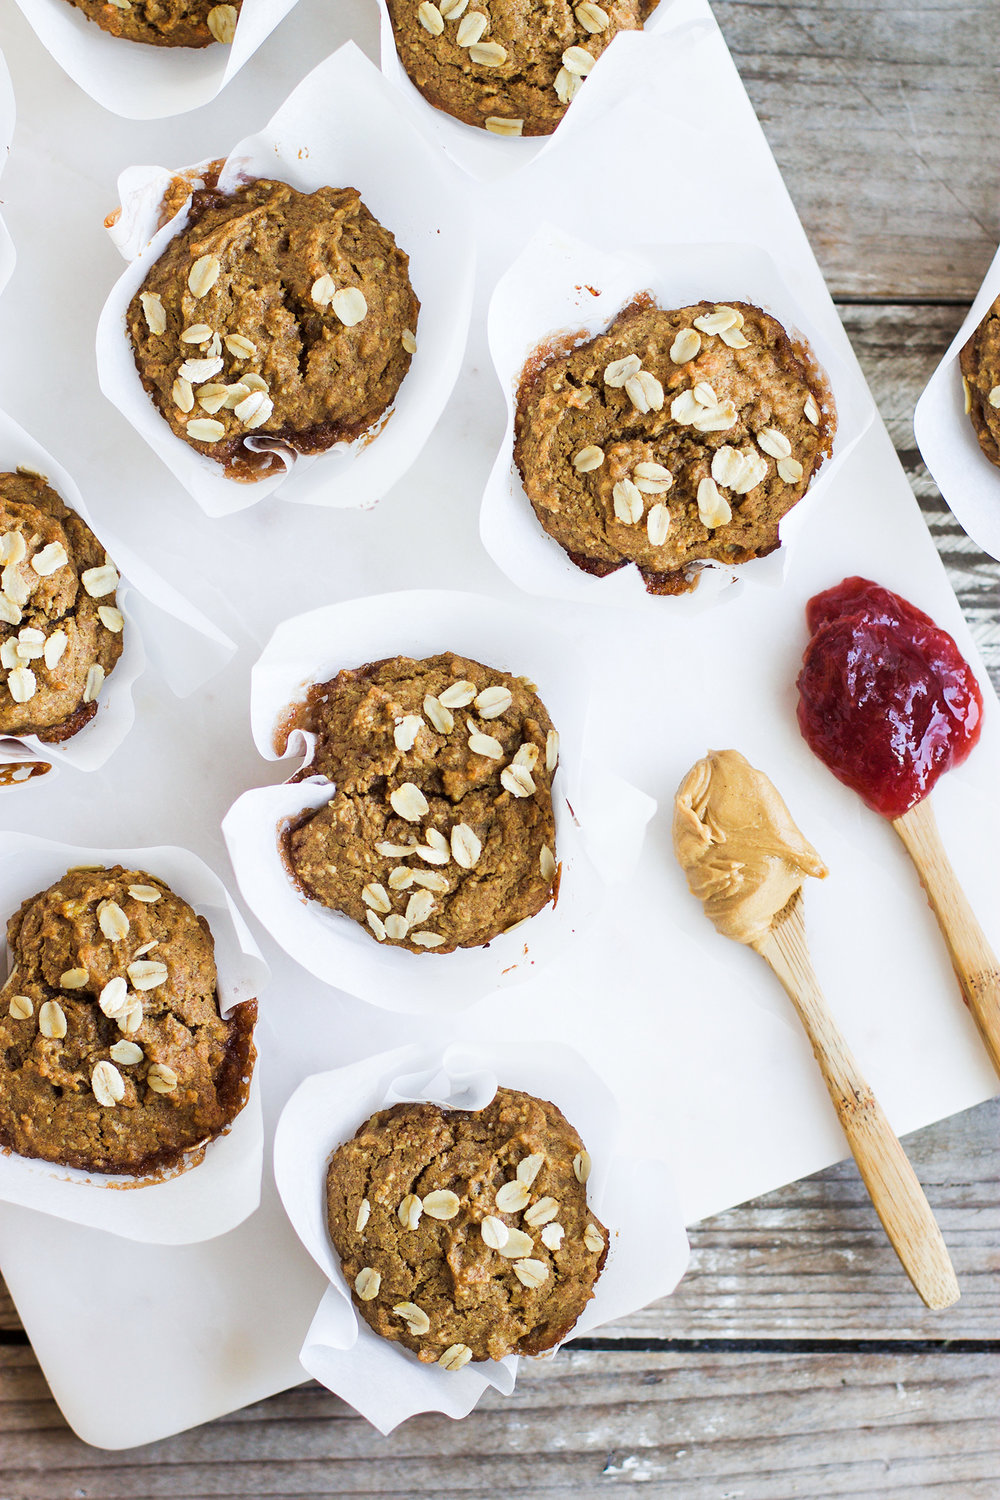 Healthy Peanut Butter and Jelly Oatmeal Muffins: My Diary of Us